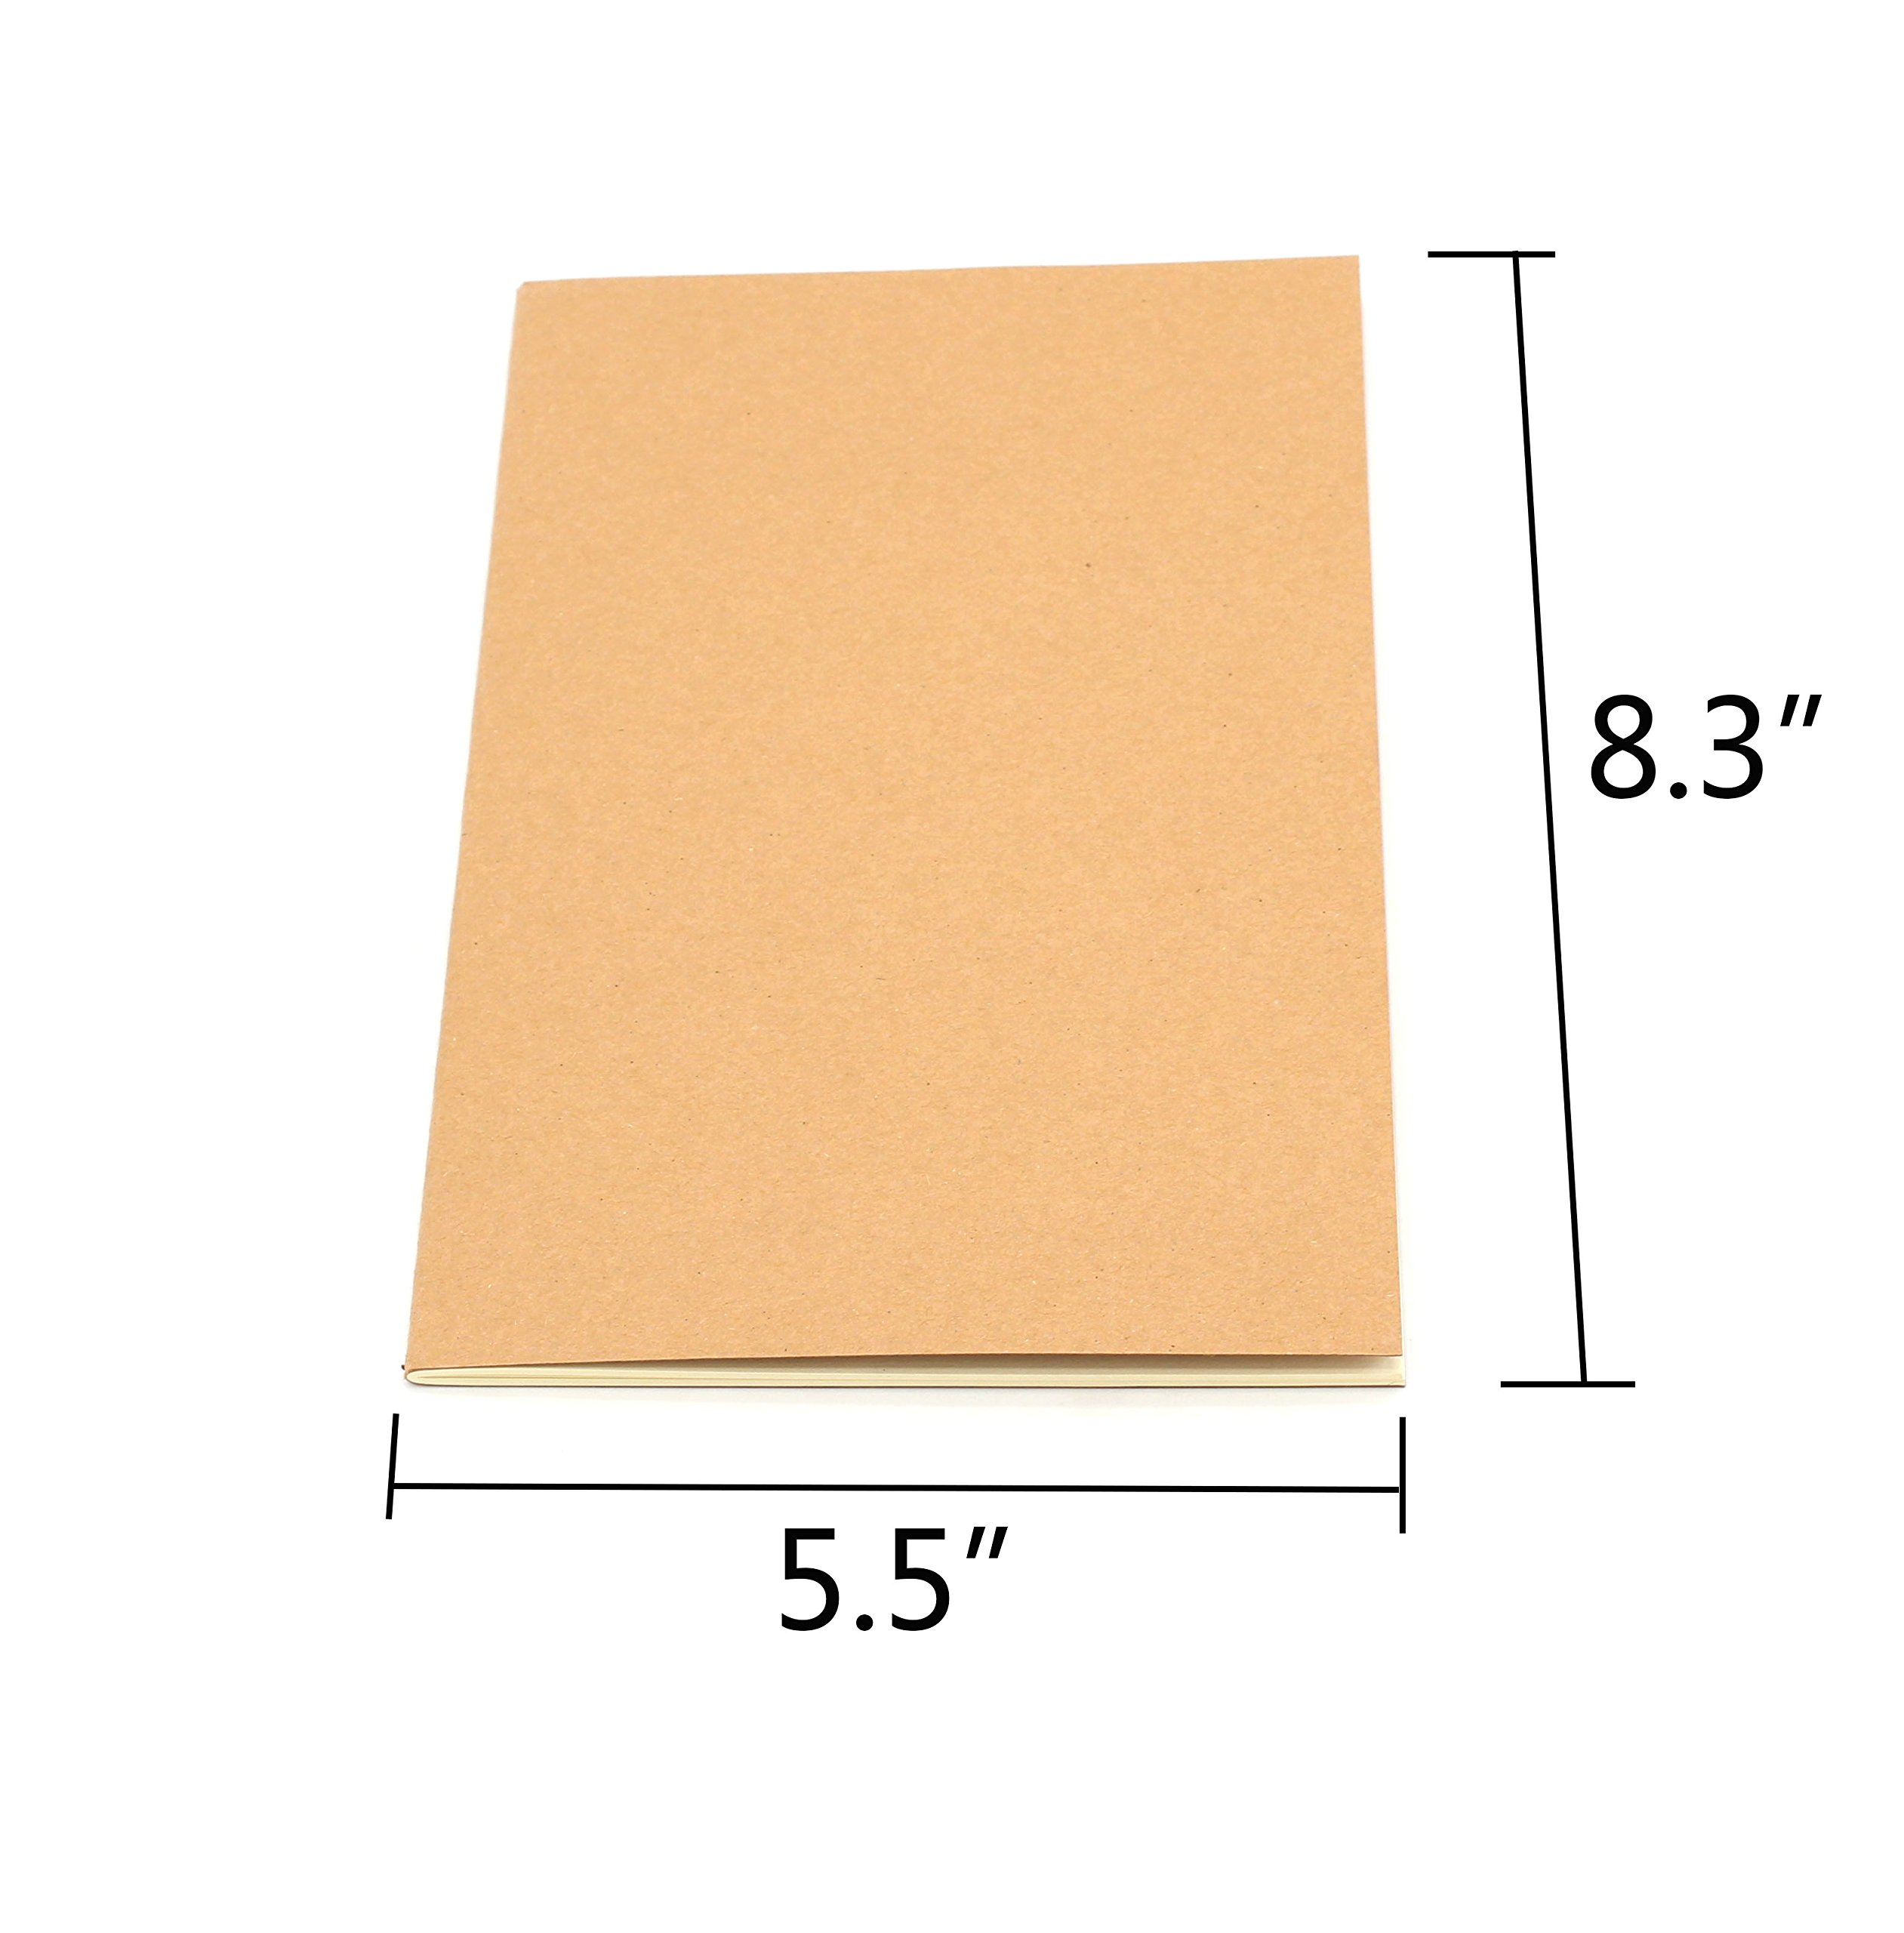 Tueascallk Travel Journal, Kraft Brown Soft Cover Notebook, A5 Specifications(5.5'' x 8.3''), College Ruled Paper,Row Spacing 0.3'', 60 Pages/30 Sheets, 6 Packs by Tueascallk (Image #3)